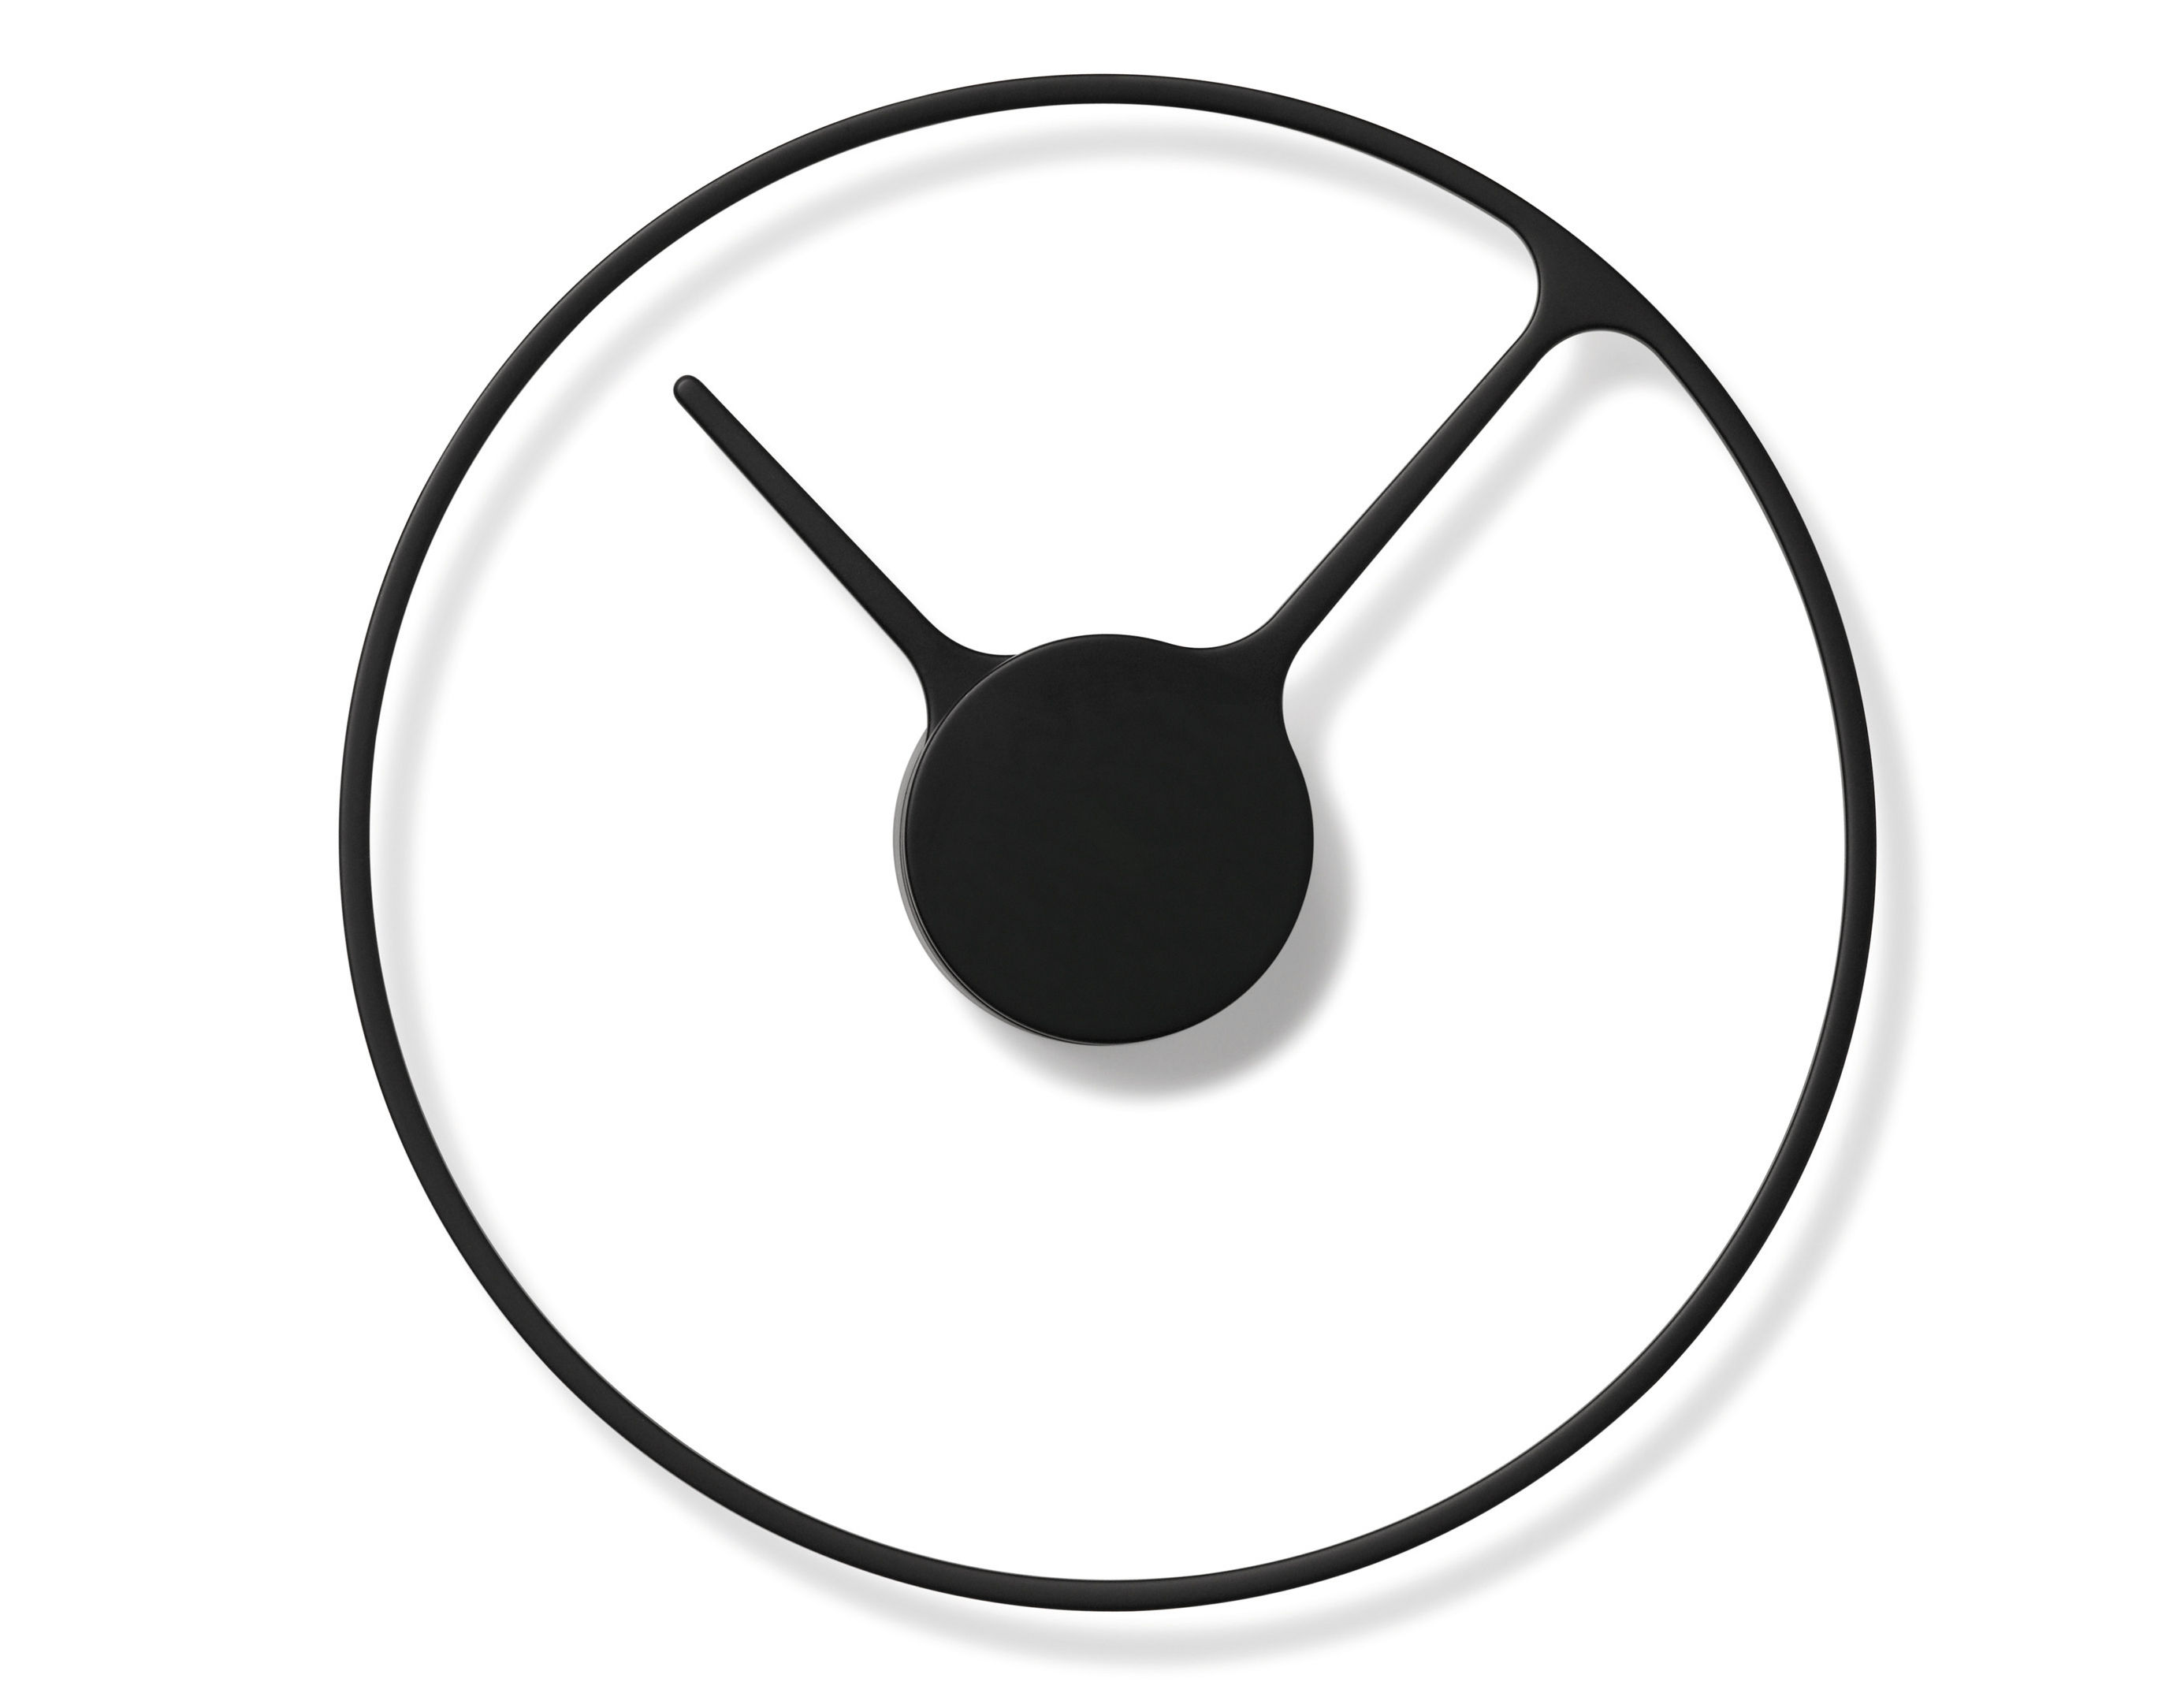 Decoration - Wall Clocks - Stelton Time Large Wall clock -  Ø 30 cm by Stelton - Black - Aluminium